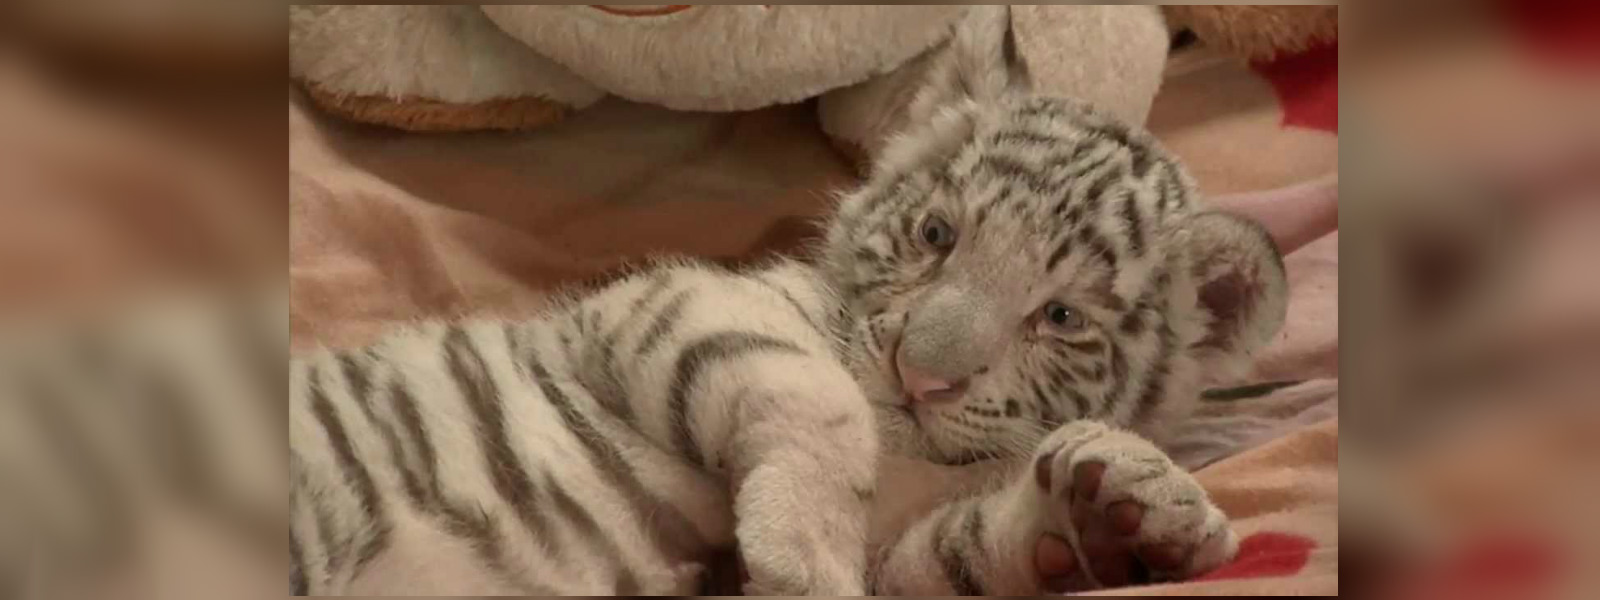 Birth of three Bengal tiger cubs delights Peru zoo